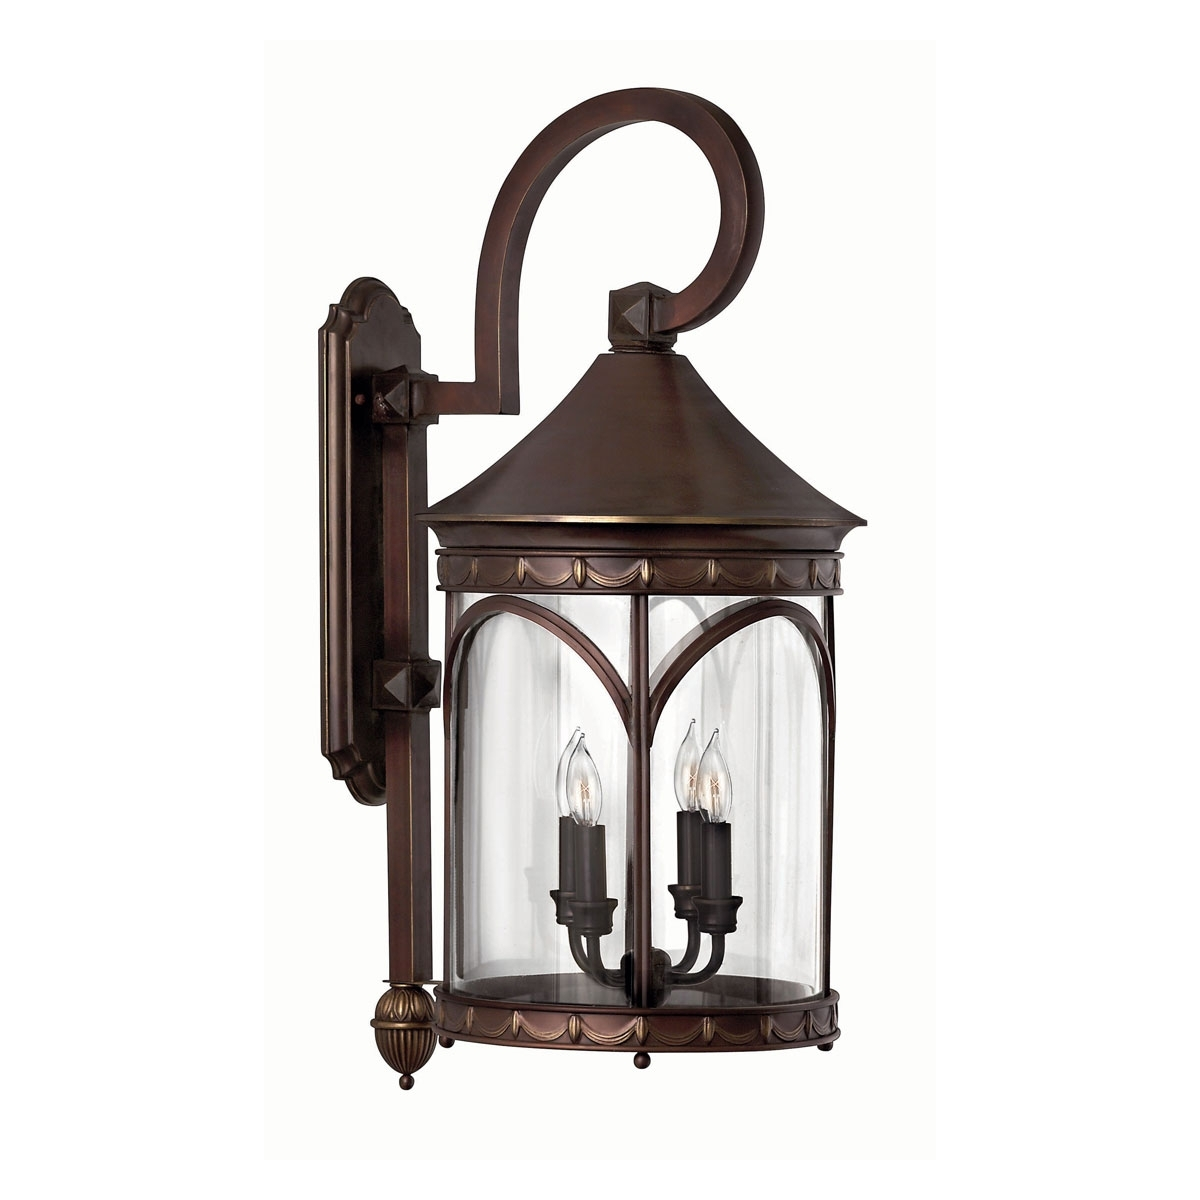 2315cb – Large Wall Outdoor Light, 30 Inch, Lucerne Copper Bronze In 2018 Hinkley Outdoor Wall Lighting (View 5 of 20)